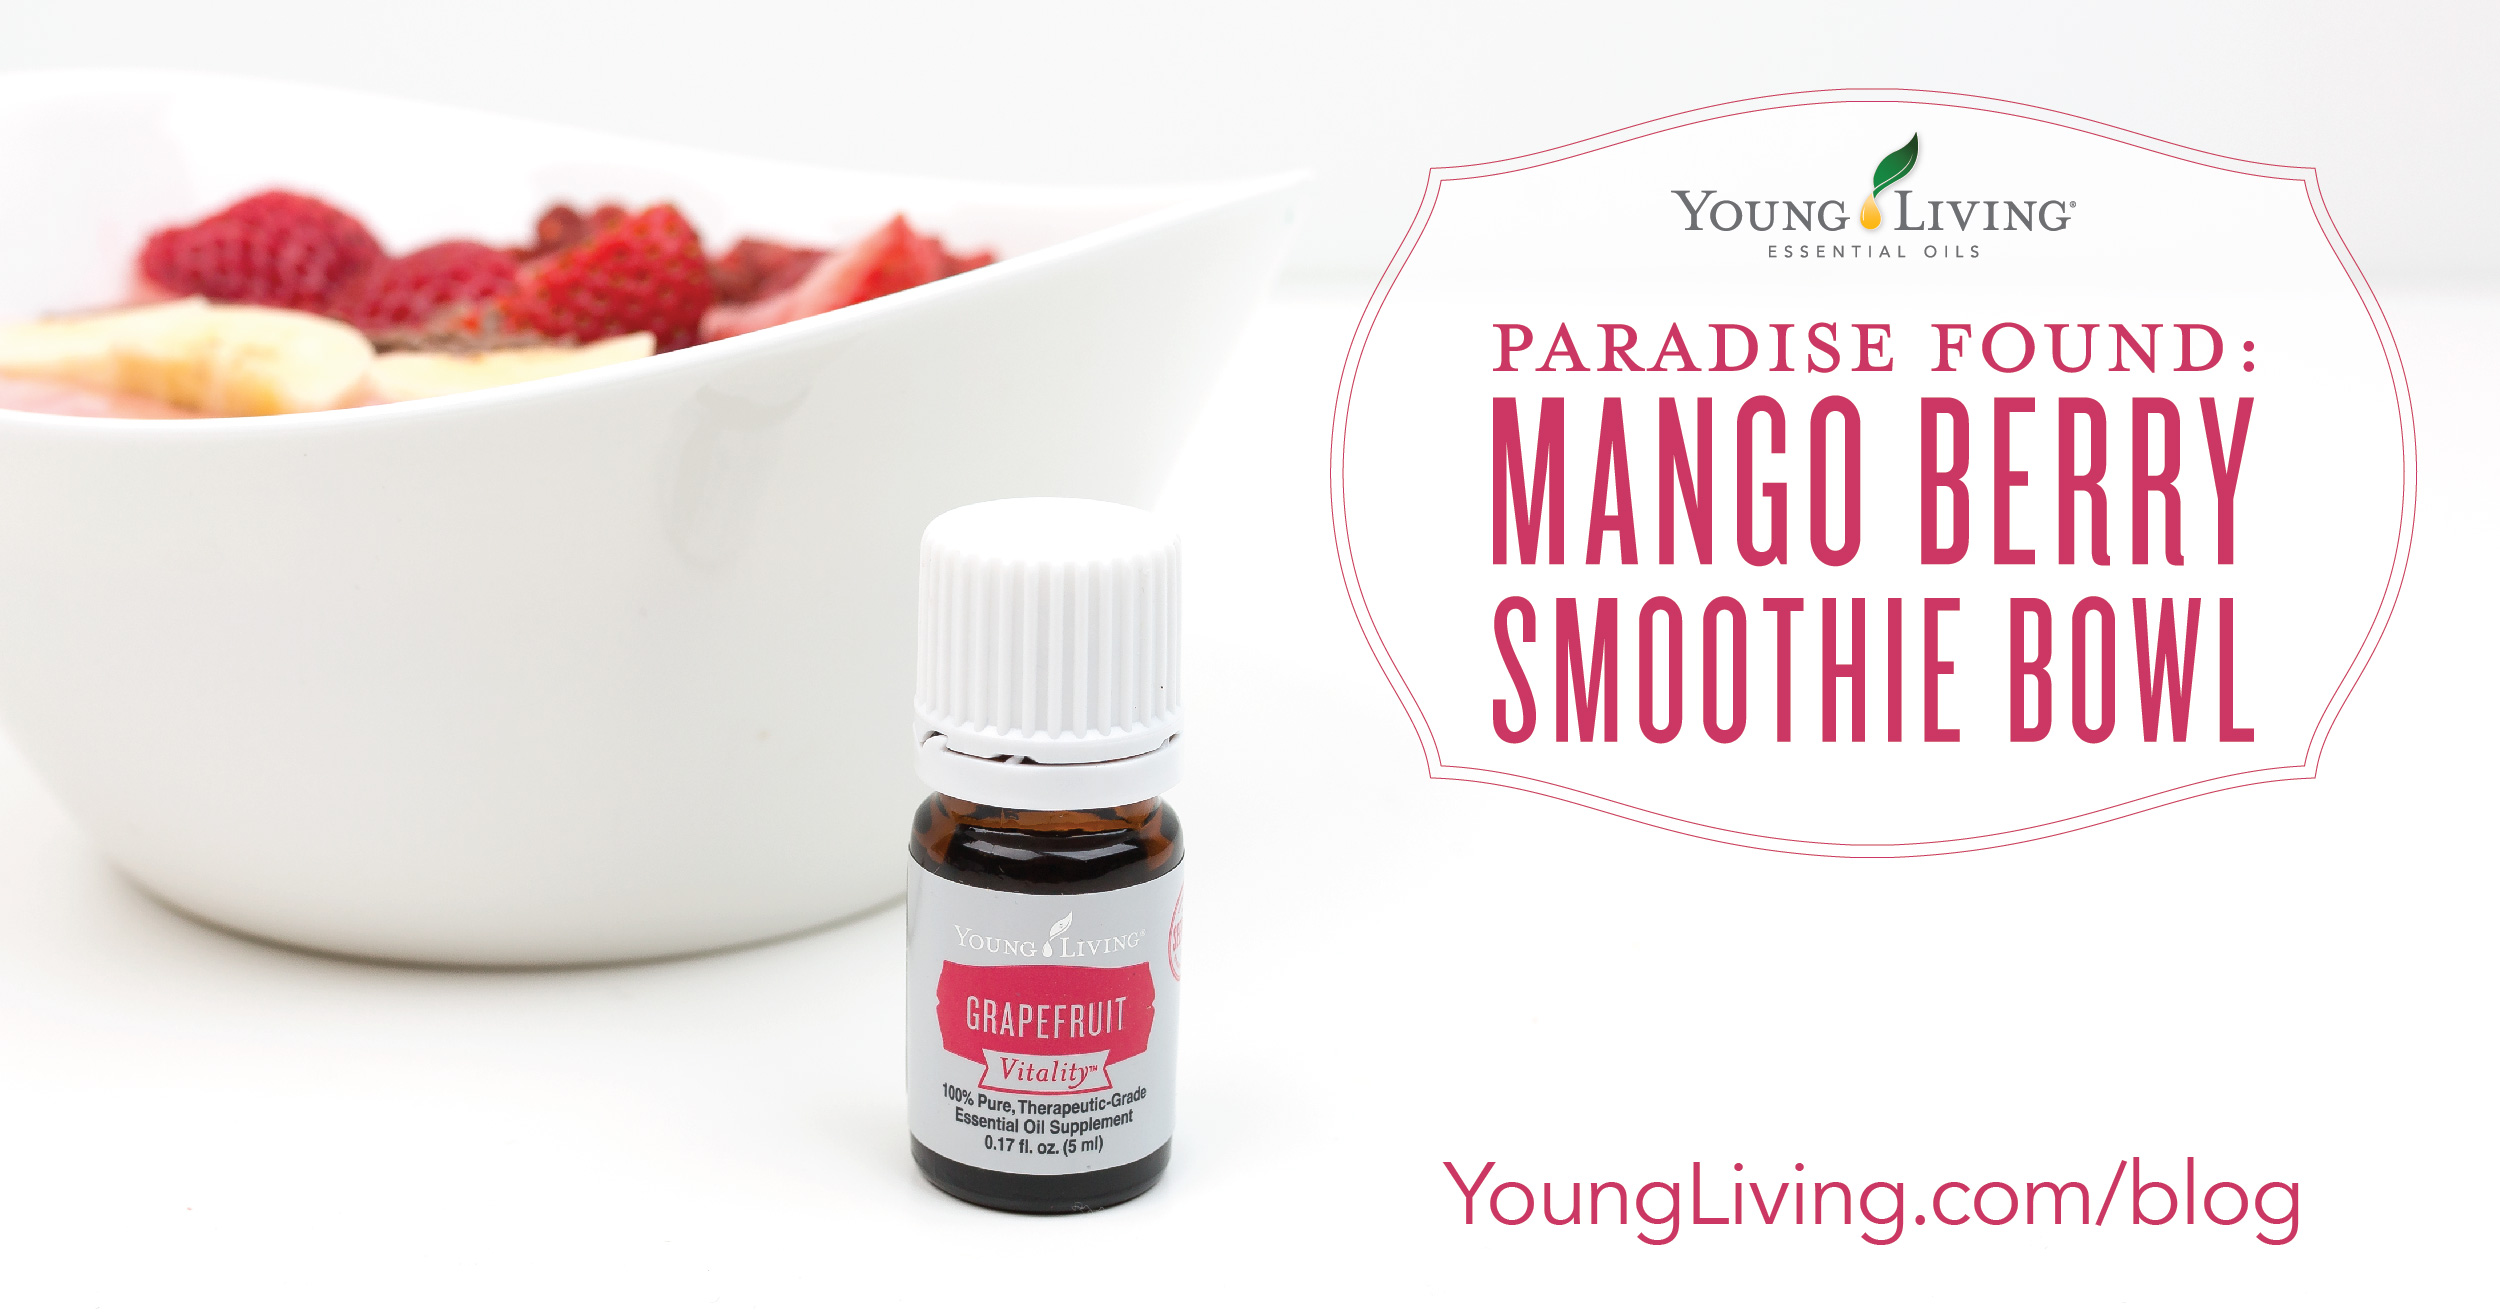 See more at  https://www.youngliving.com/blog/a-smoothie-bowl-recipe-to-refresh-your-breakfast/